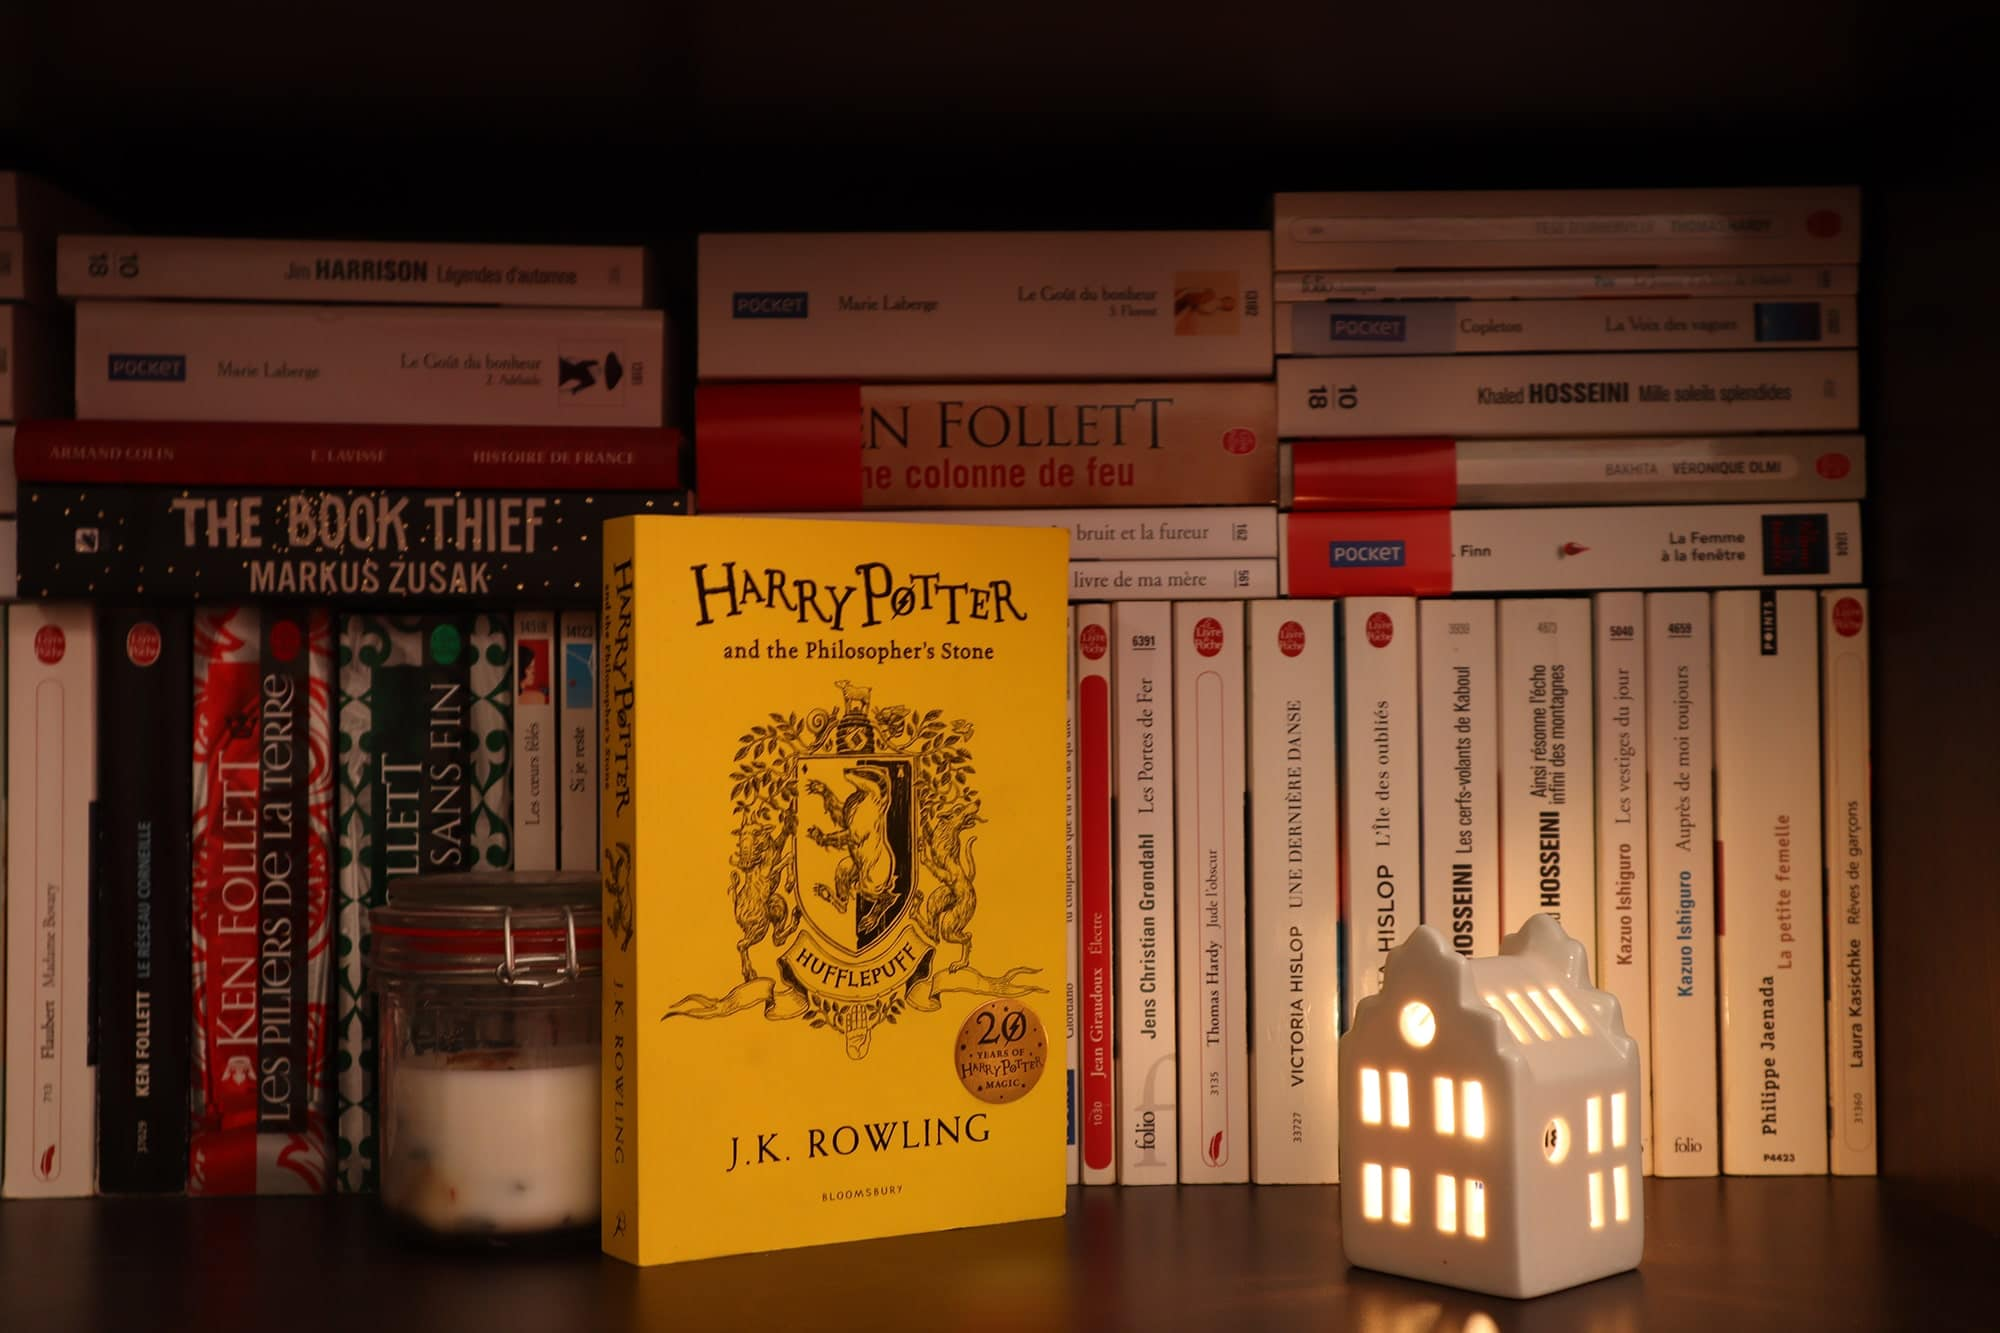 Harry Potter and the Philosopher's Stone, J. K. Rowling – 1997 – Ed. Bloomsbury